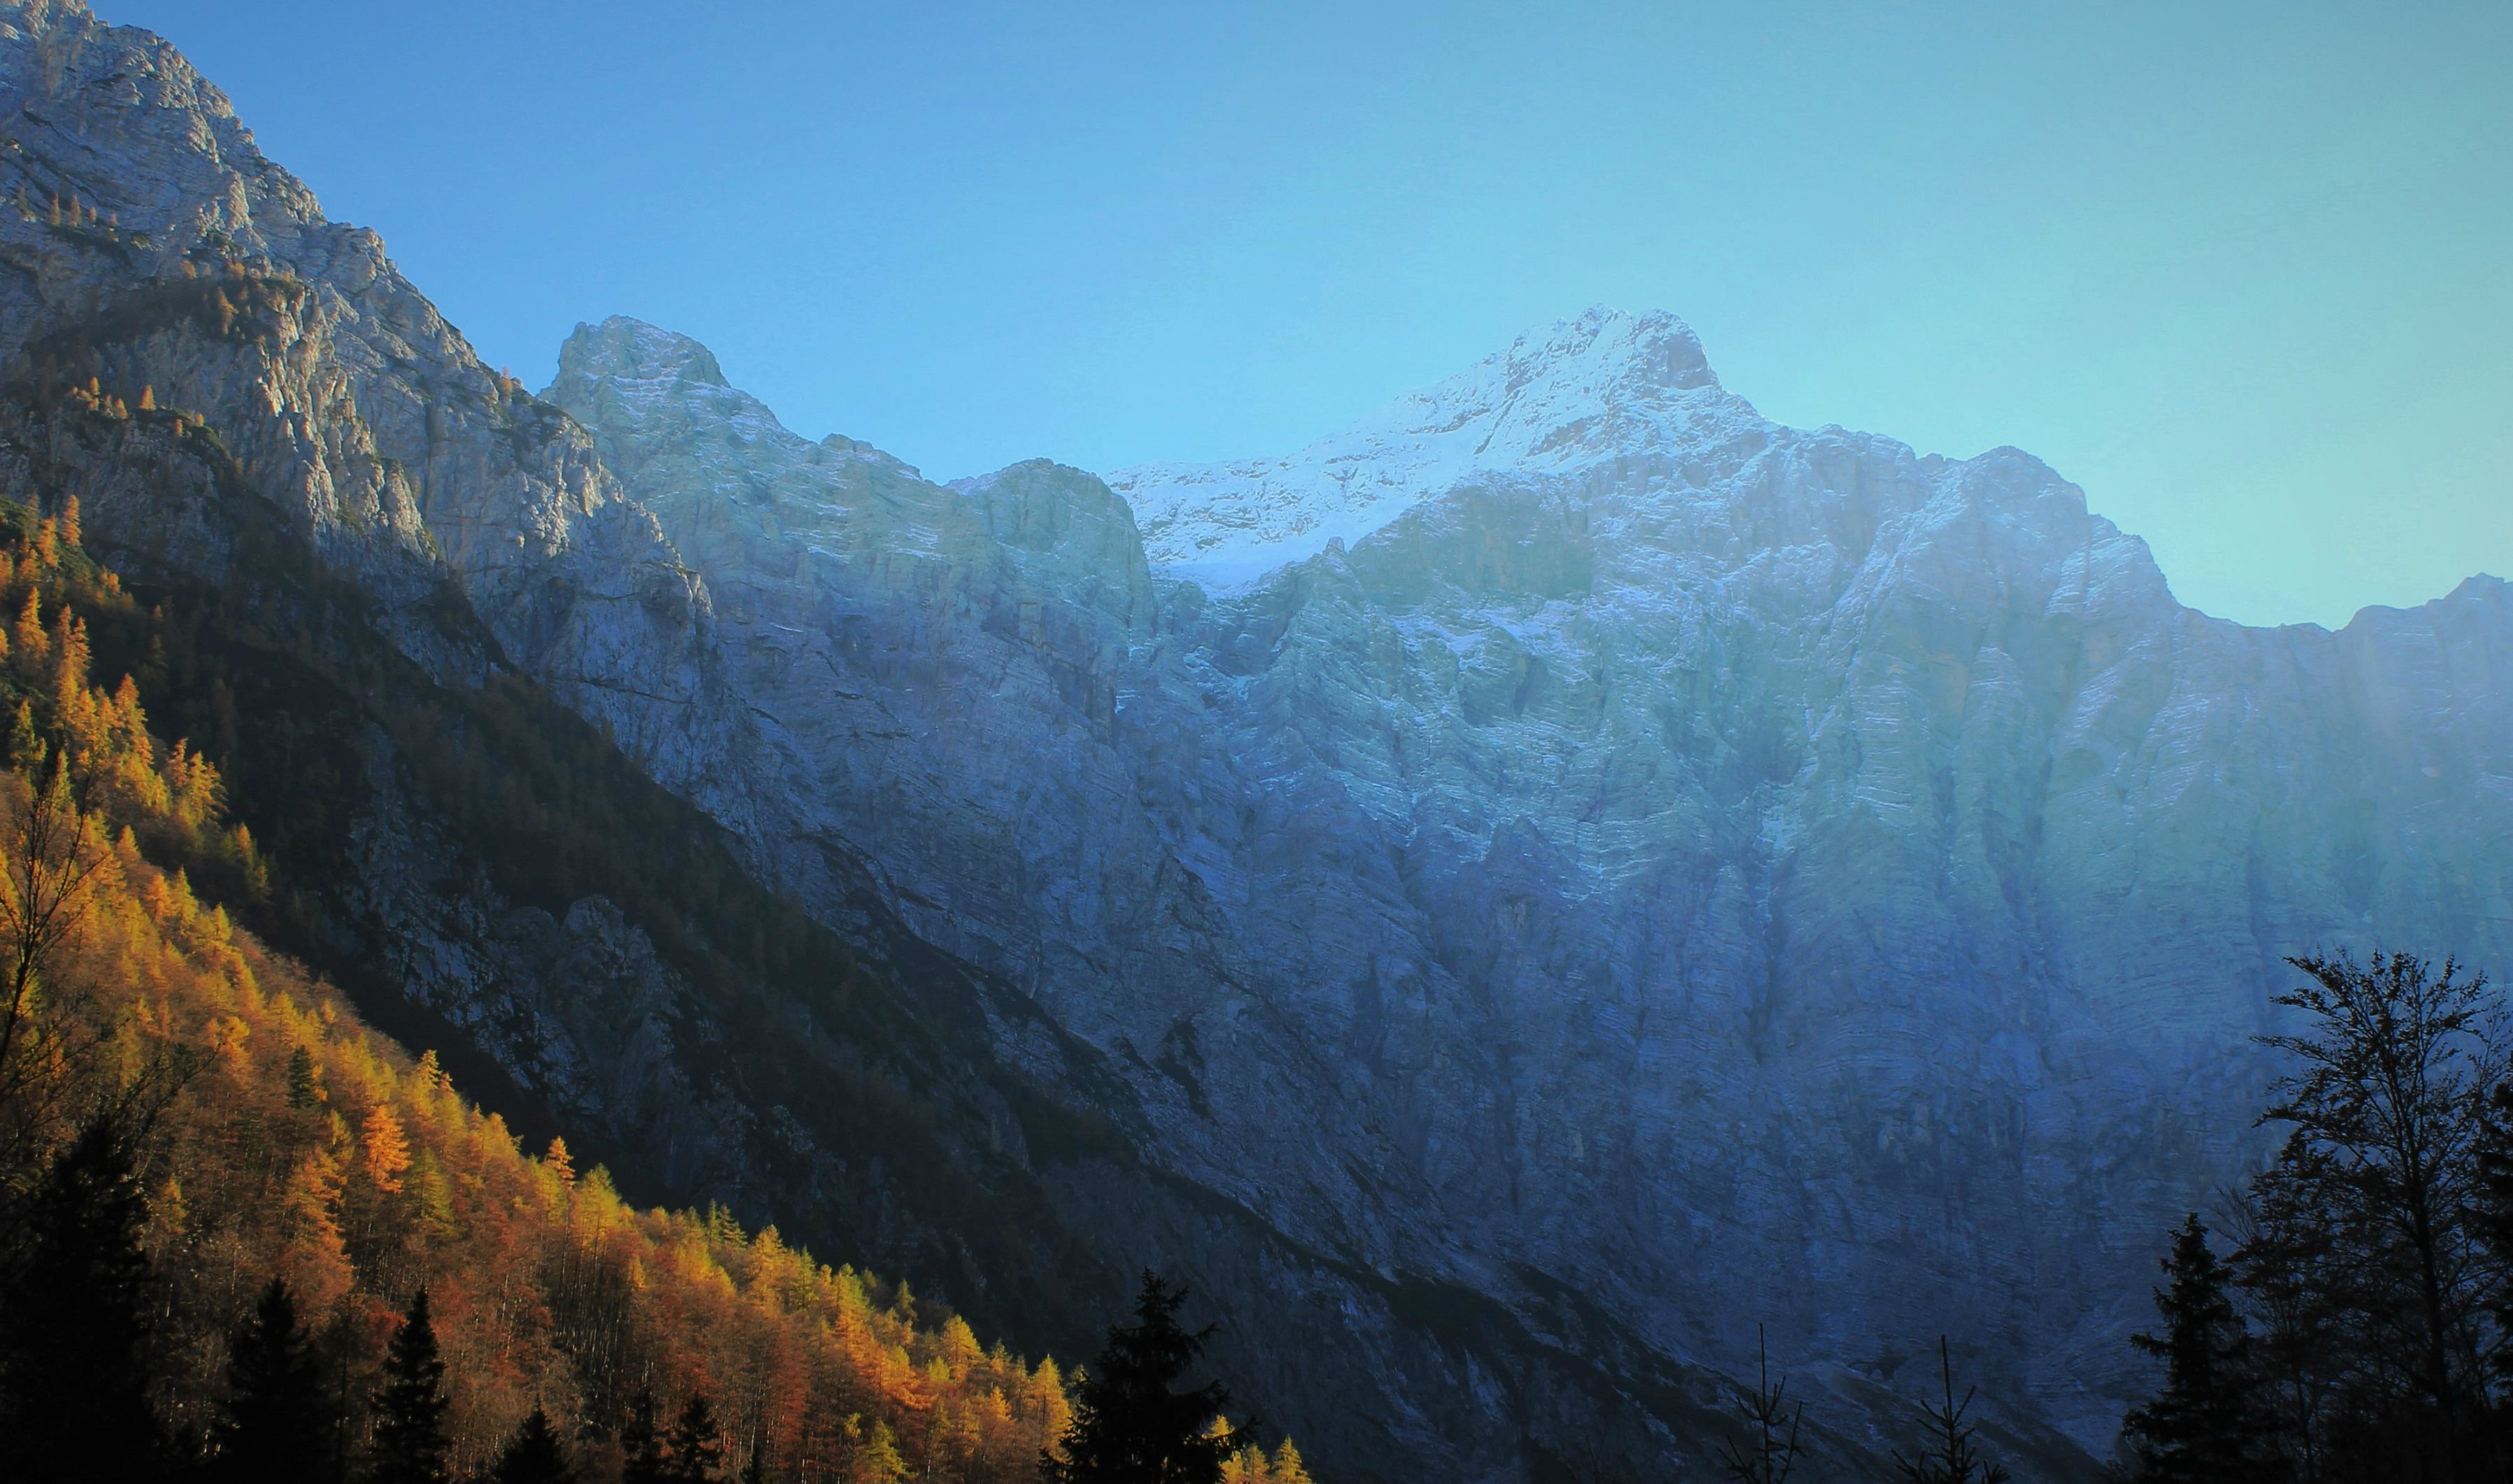 The Large North Face of Triglav the Highest Mountain in the Julian Alps wallpaper